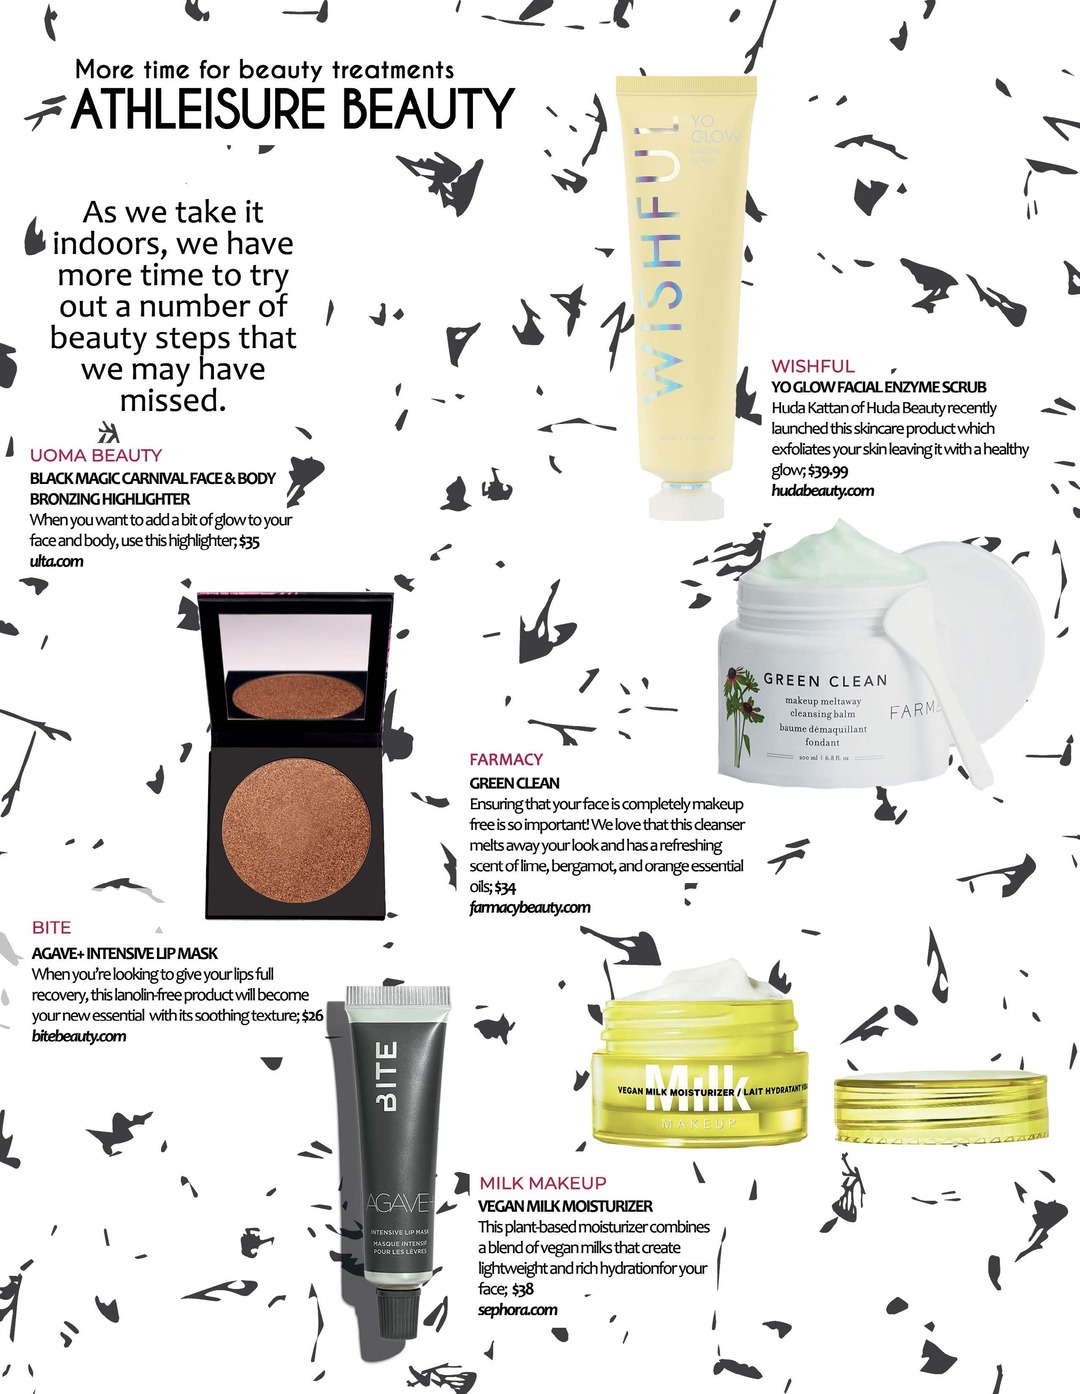 Page 99 of Athleisure Mag #51 Mar 2020 | Athleisure Beauty